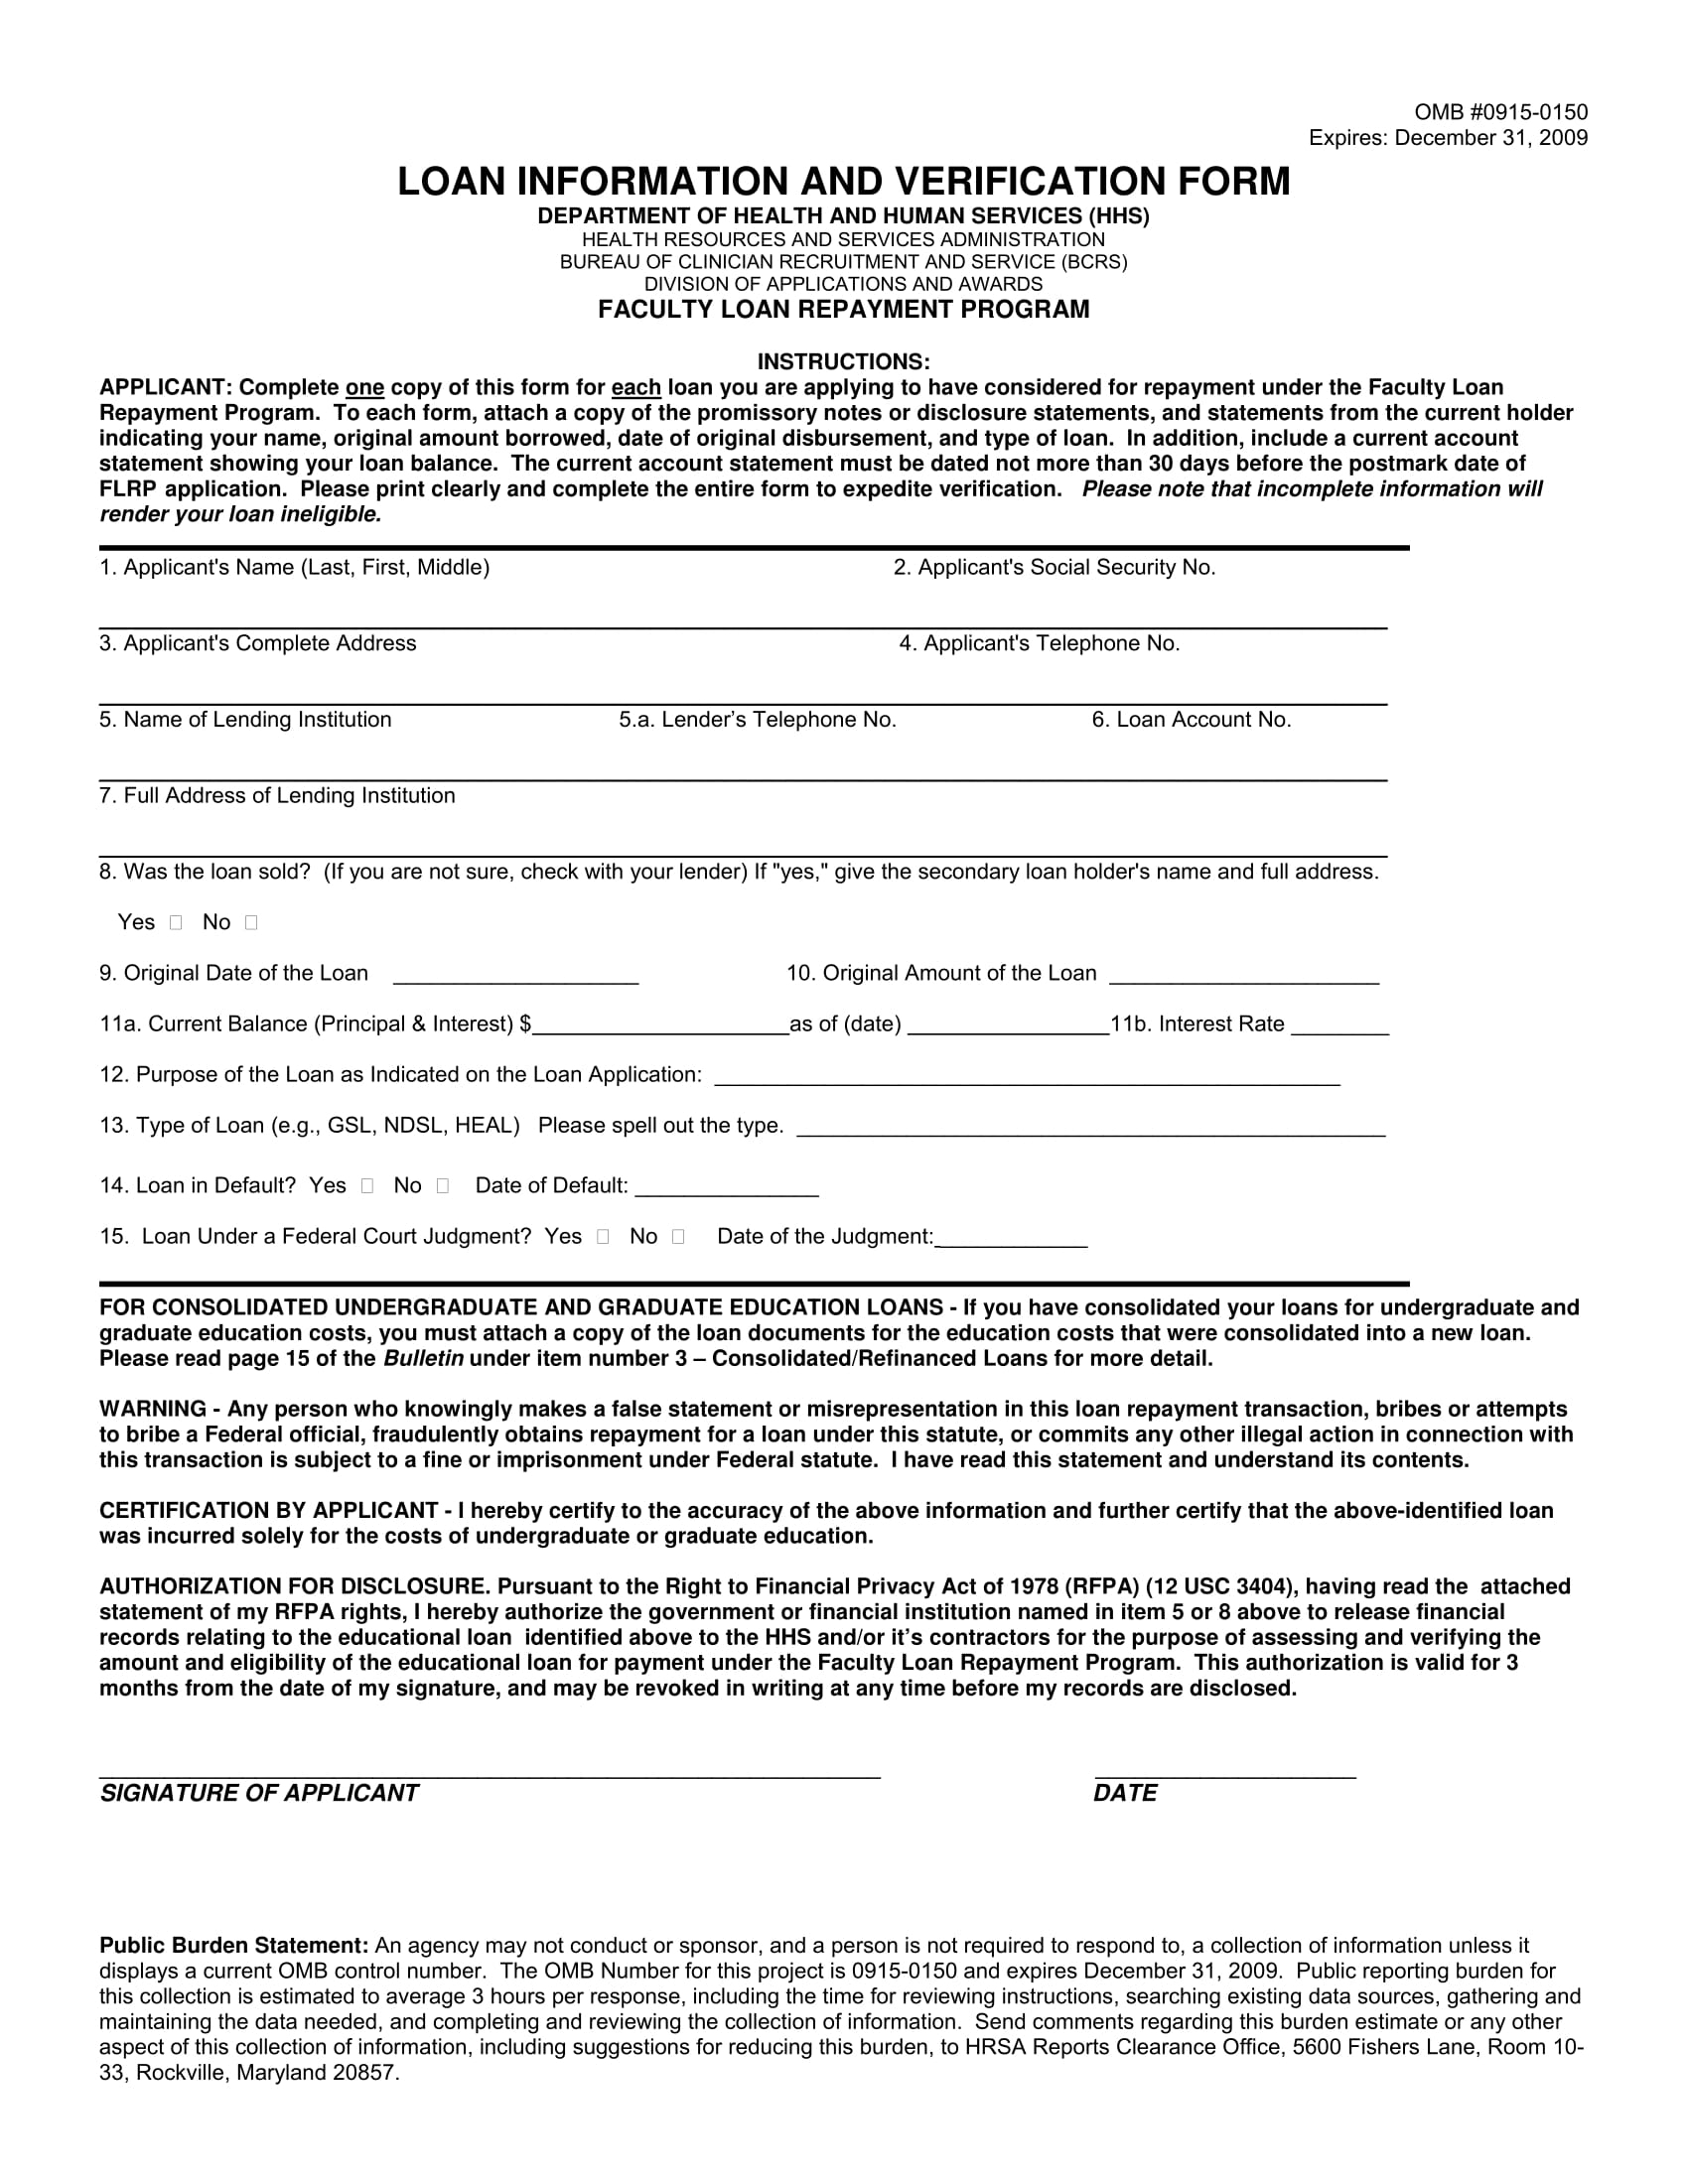 faculty loan information and verification form 1